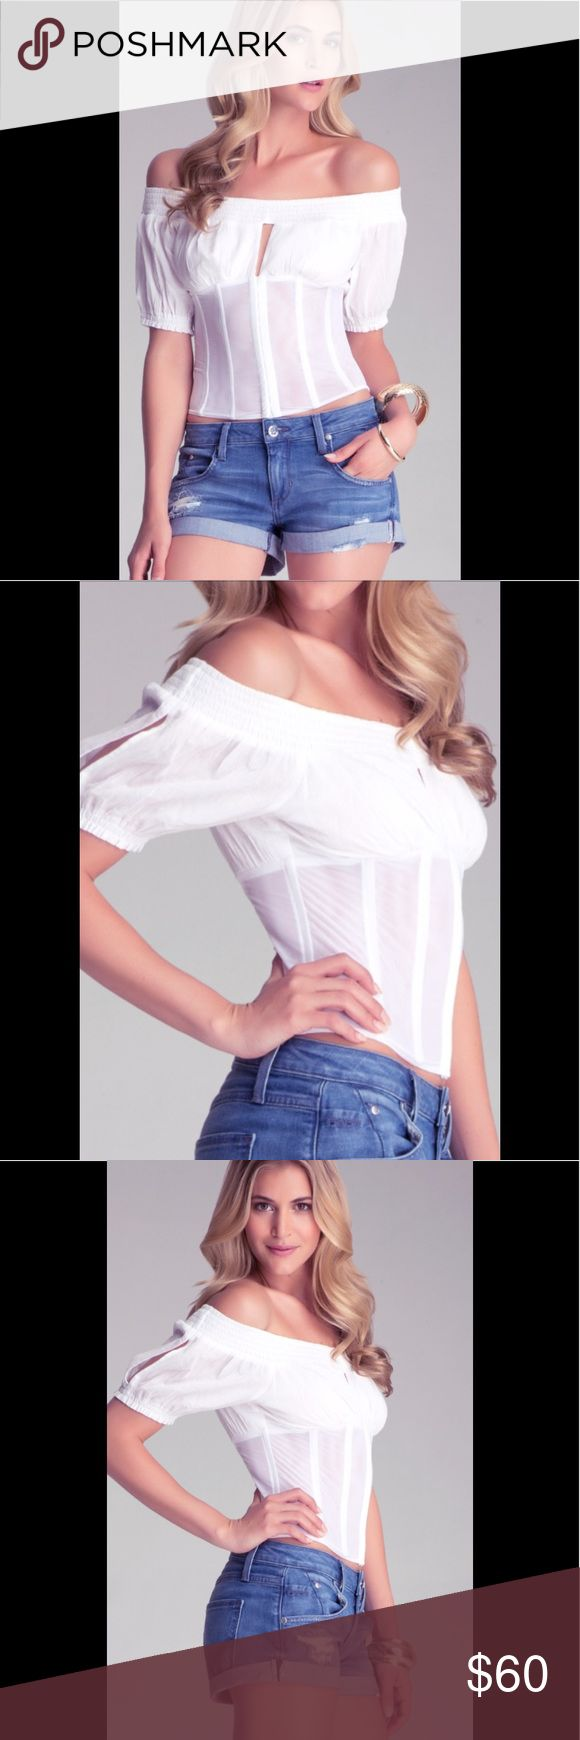 BEBE White Off Shoulder Peasant Corset Top L Make a statement in this understated and feminine Sultry Too by Bebe. Whitest white cotton peasant style that is off the shoulder. What makes it so sexy is the sheer corset fit with boning and hook and eye closure do that ultra flattering fit. Also features a peek a boo teardrop slit at center of bust. This is new with tags however the tag was accidentally removed. Size Large bebe Tops